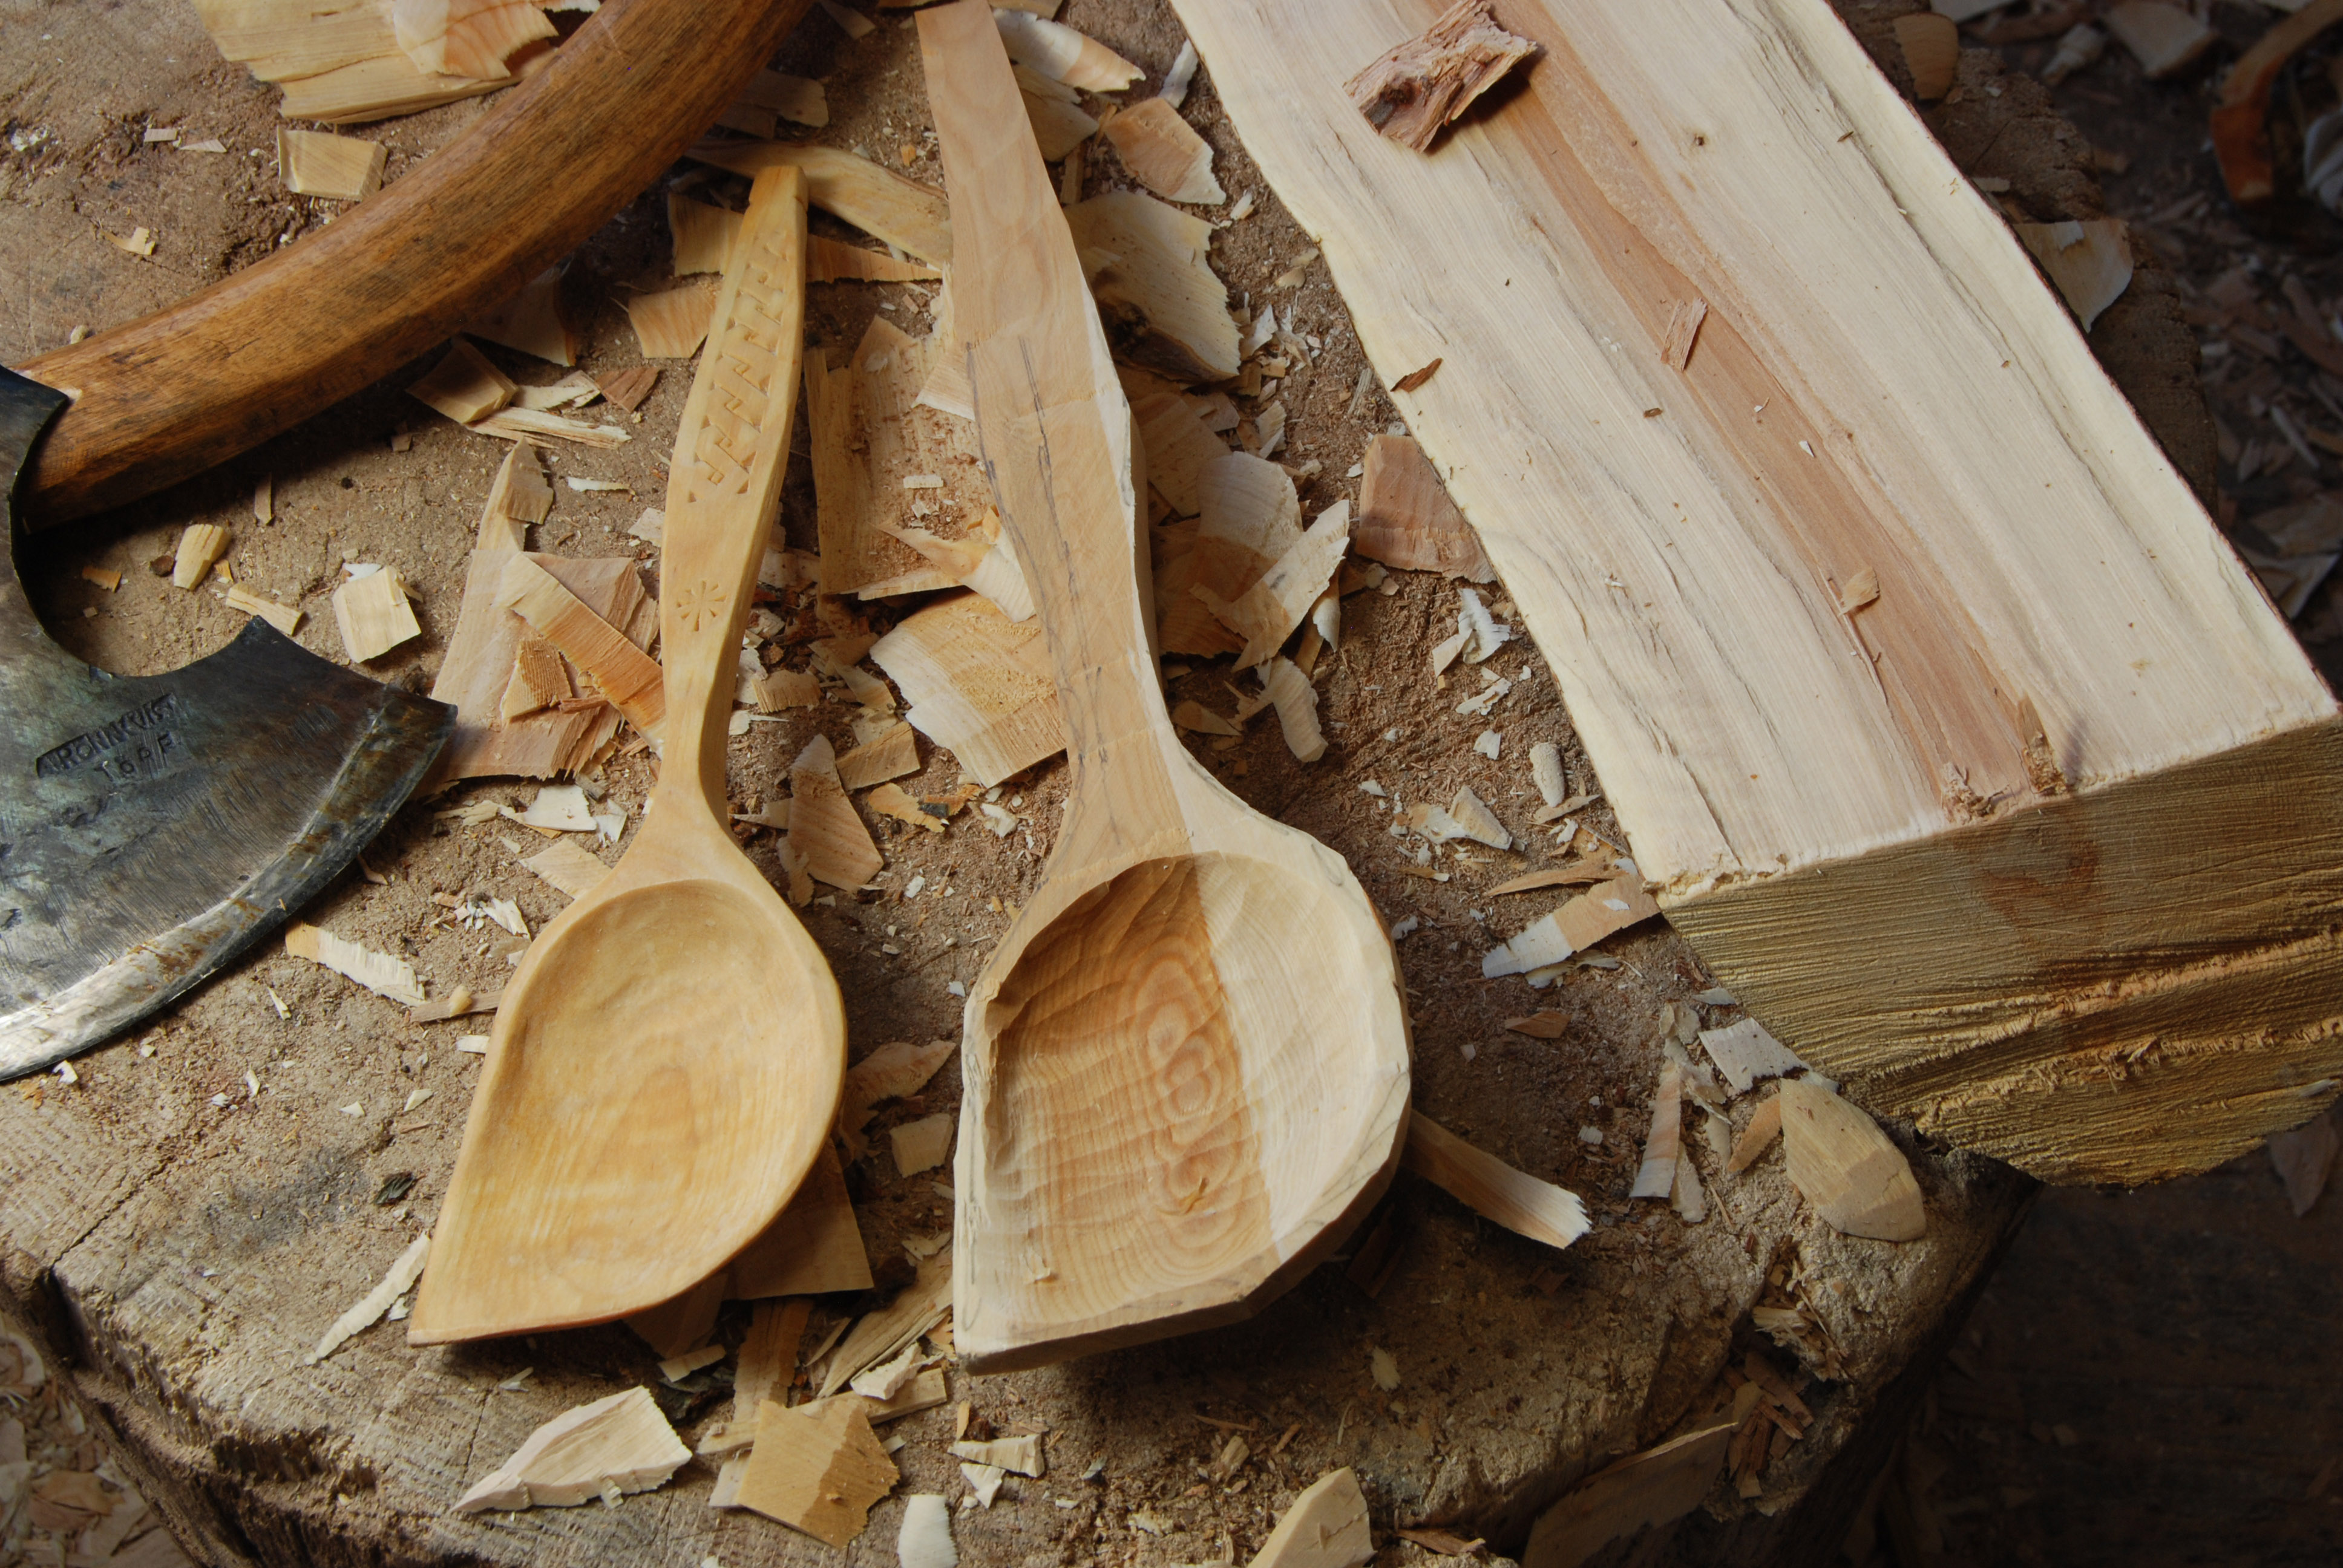 Spoon carving class may get it while you can